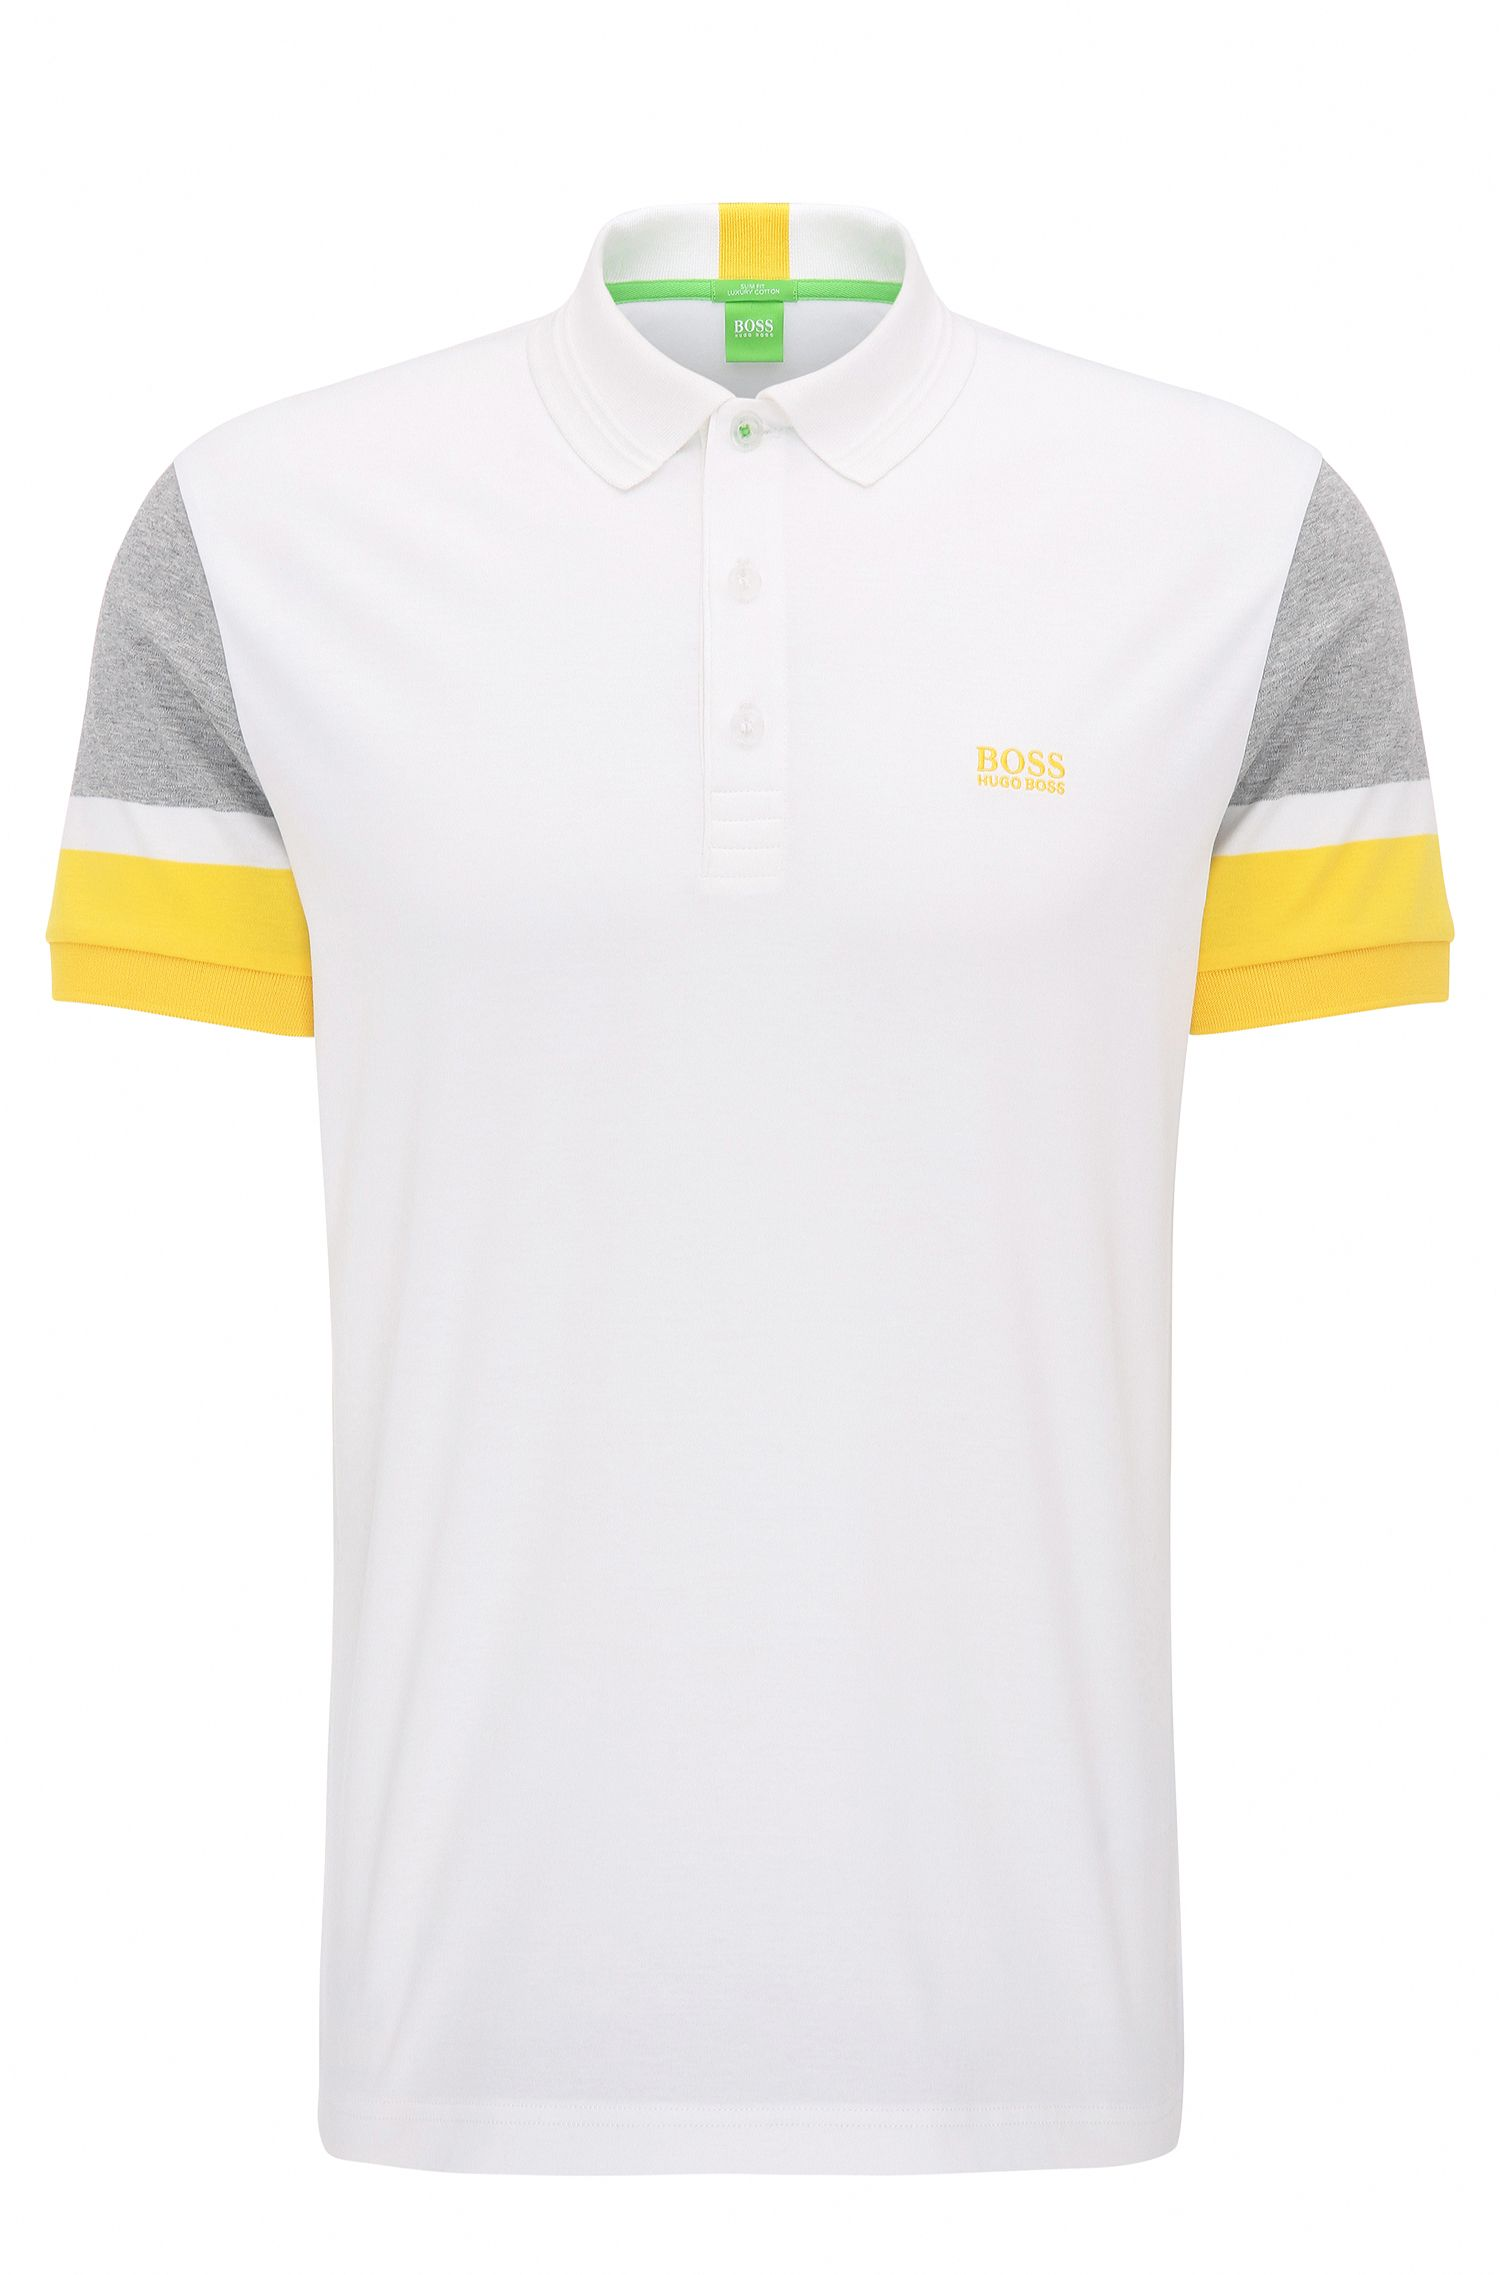 Slim-fit cotton polo shirt with colourblocking